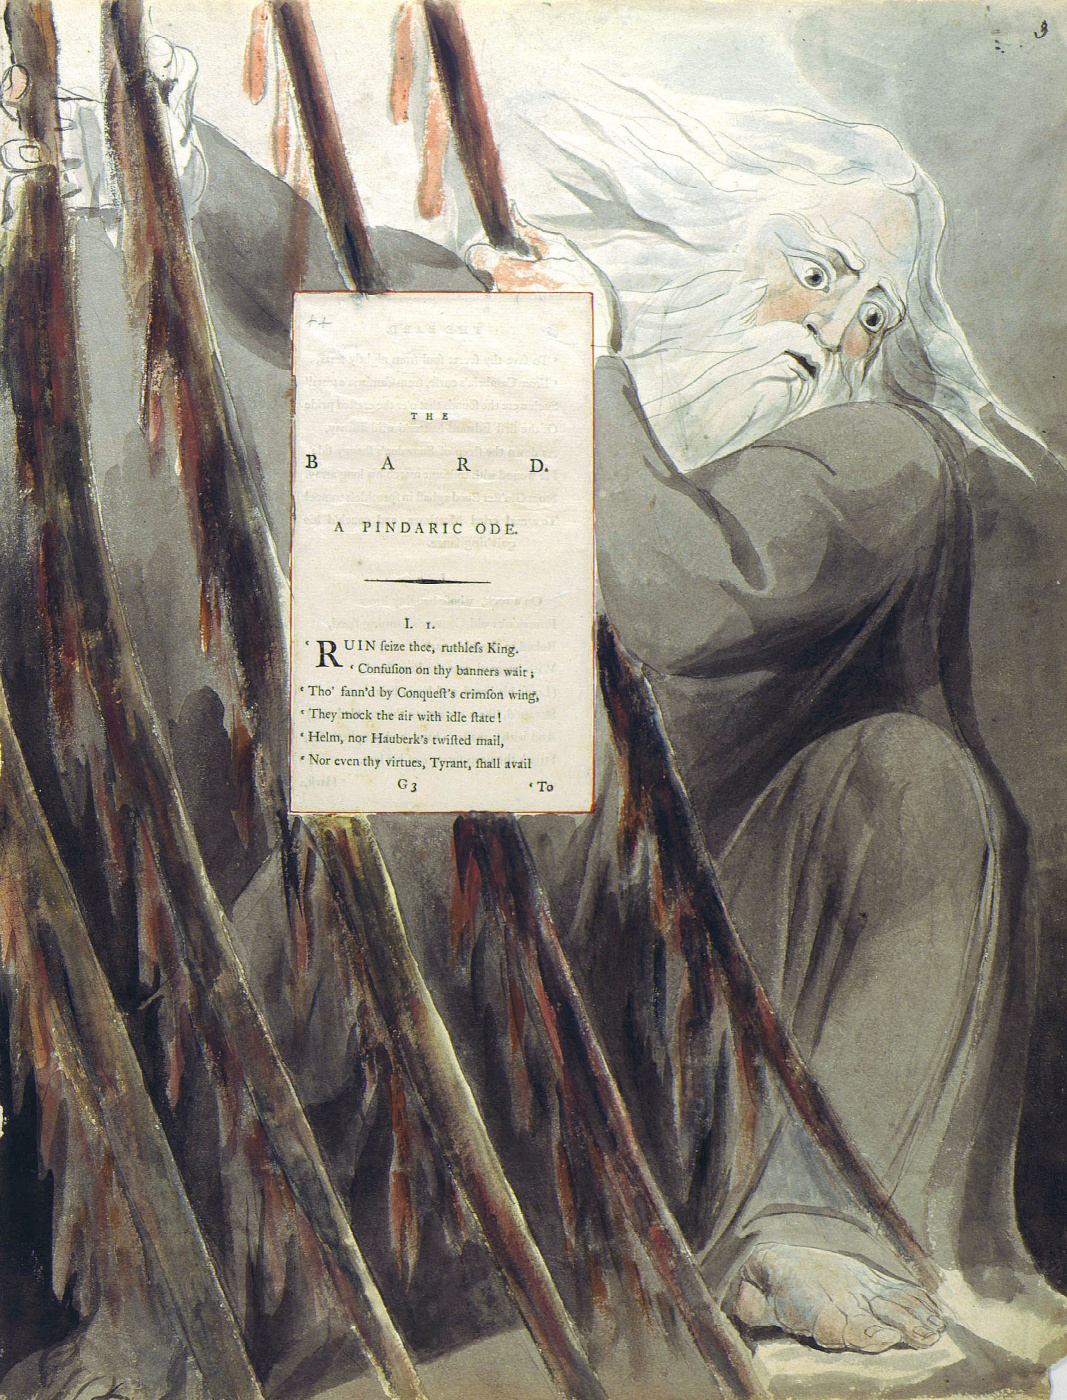 William Blake. Illustrations to the poems. Bard. Pintoresca ode. Sheet 3. Beginning of the poem